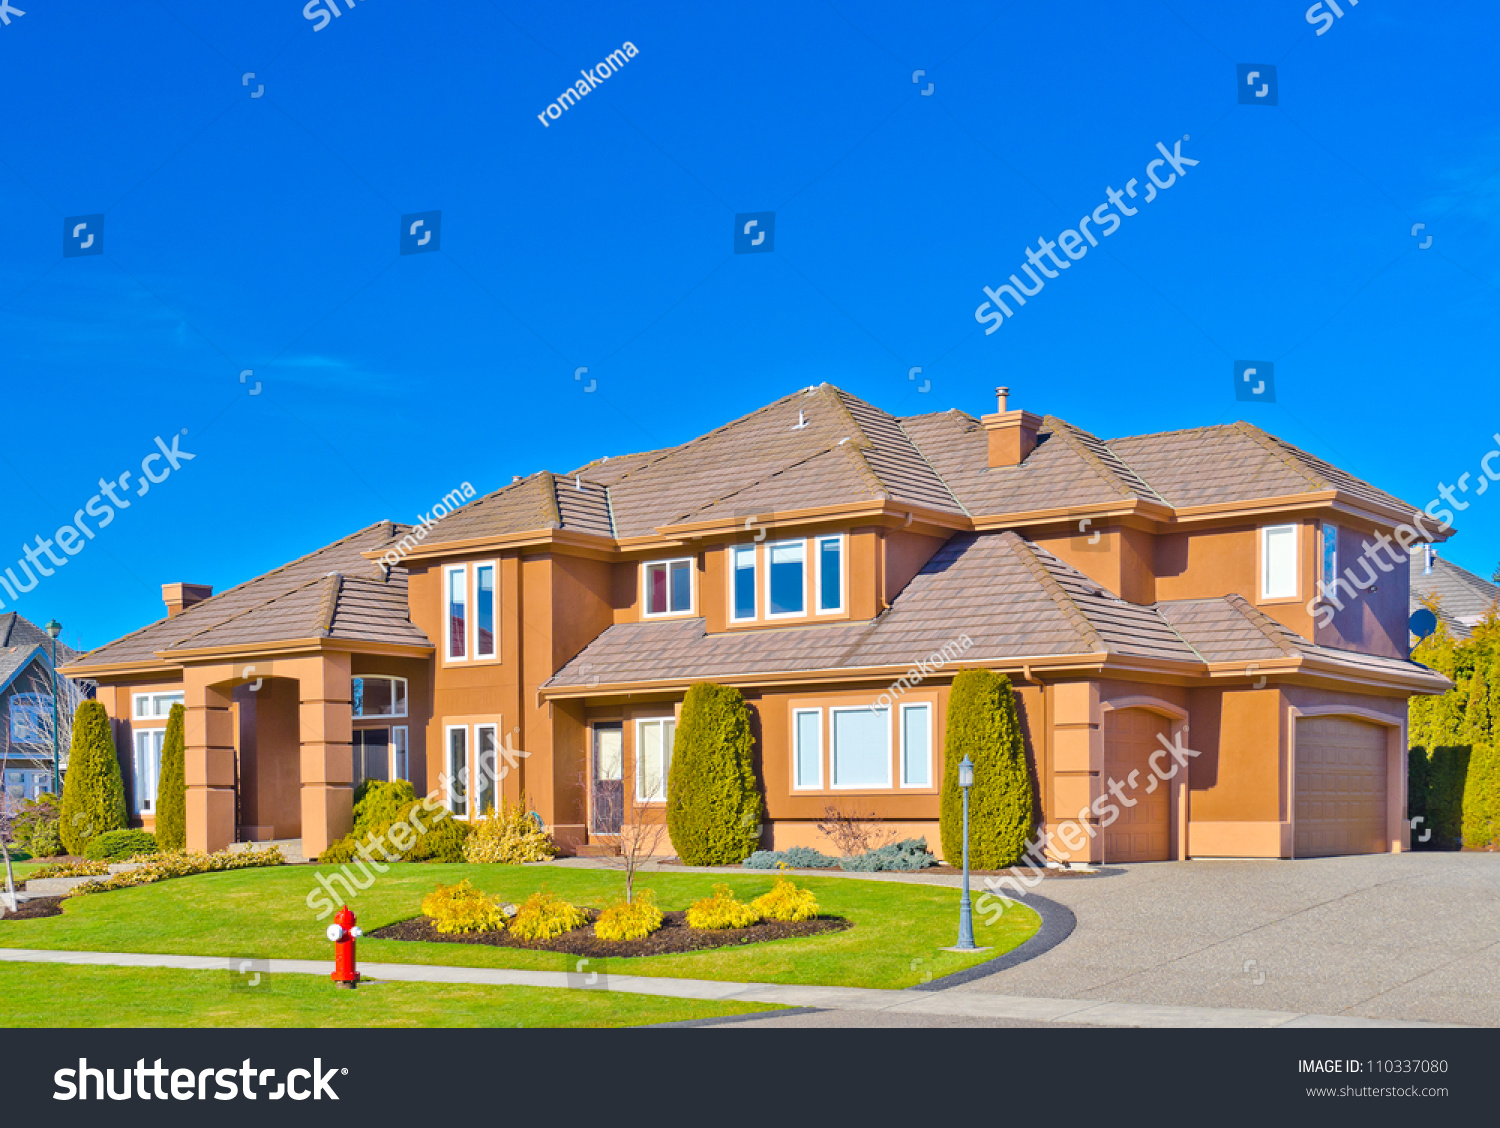 Custom Built Big Luxury House Triple Stock Photo 110337080 Shutterstock